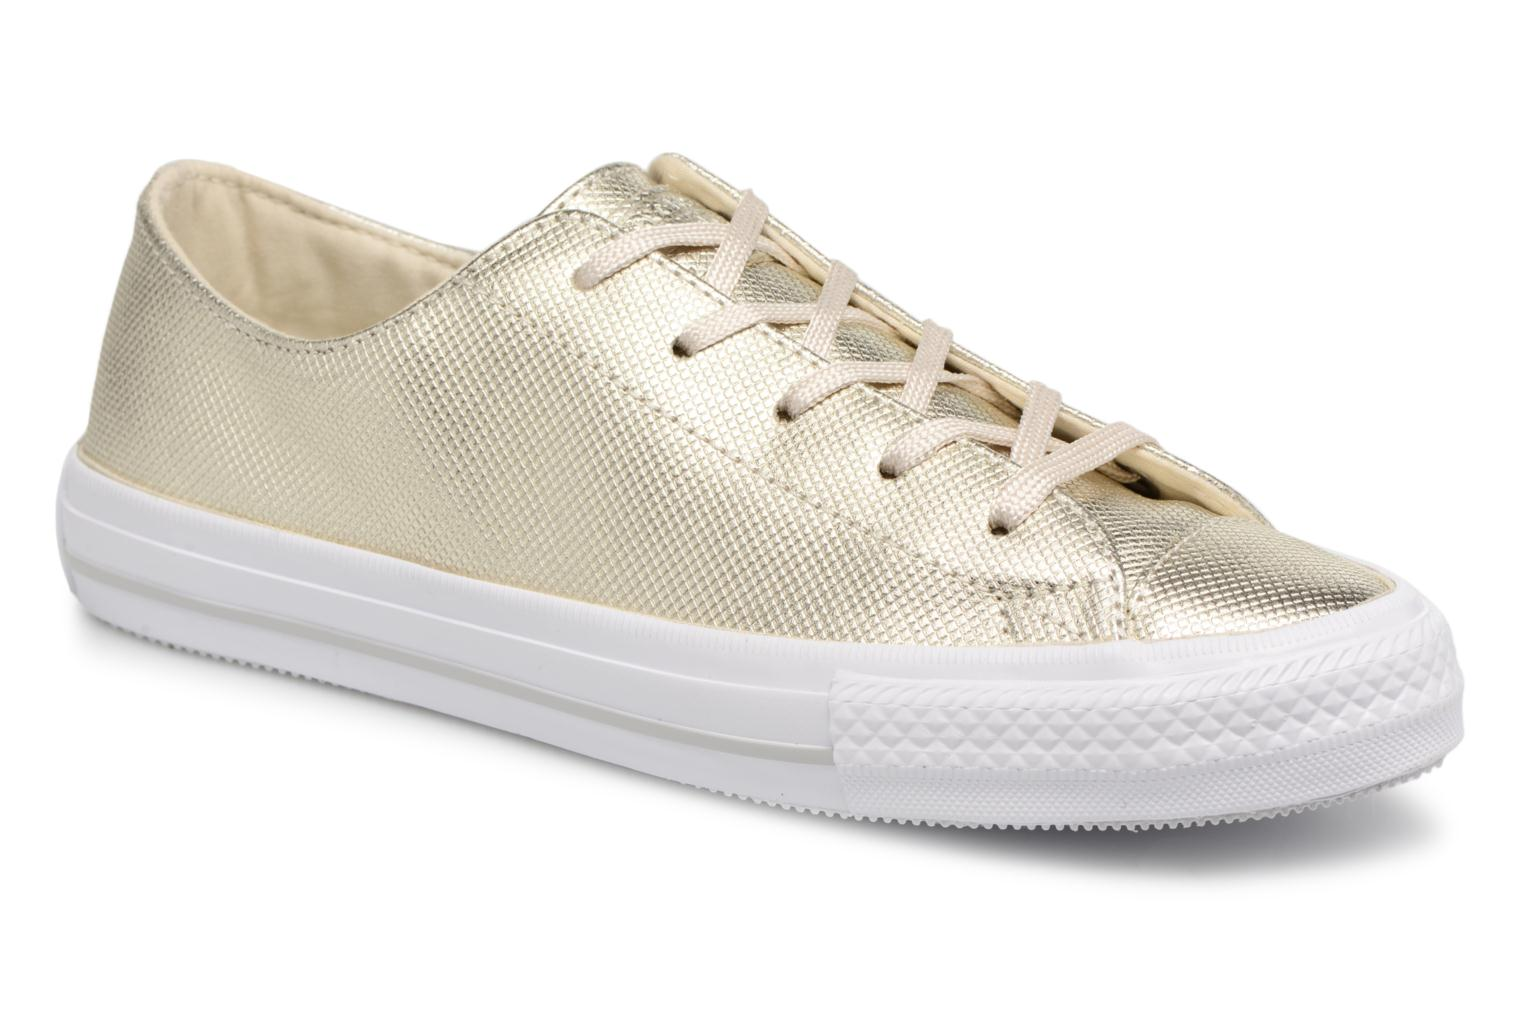 Converse Ctas Gemma Diamond Foil Leather Ox (Or et bronze) - Baskets chez Sarenza (270387)